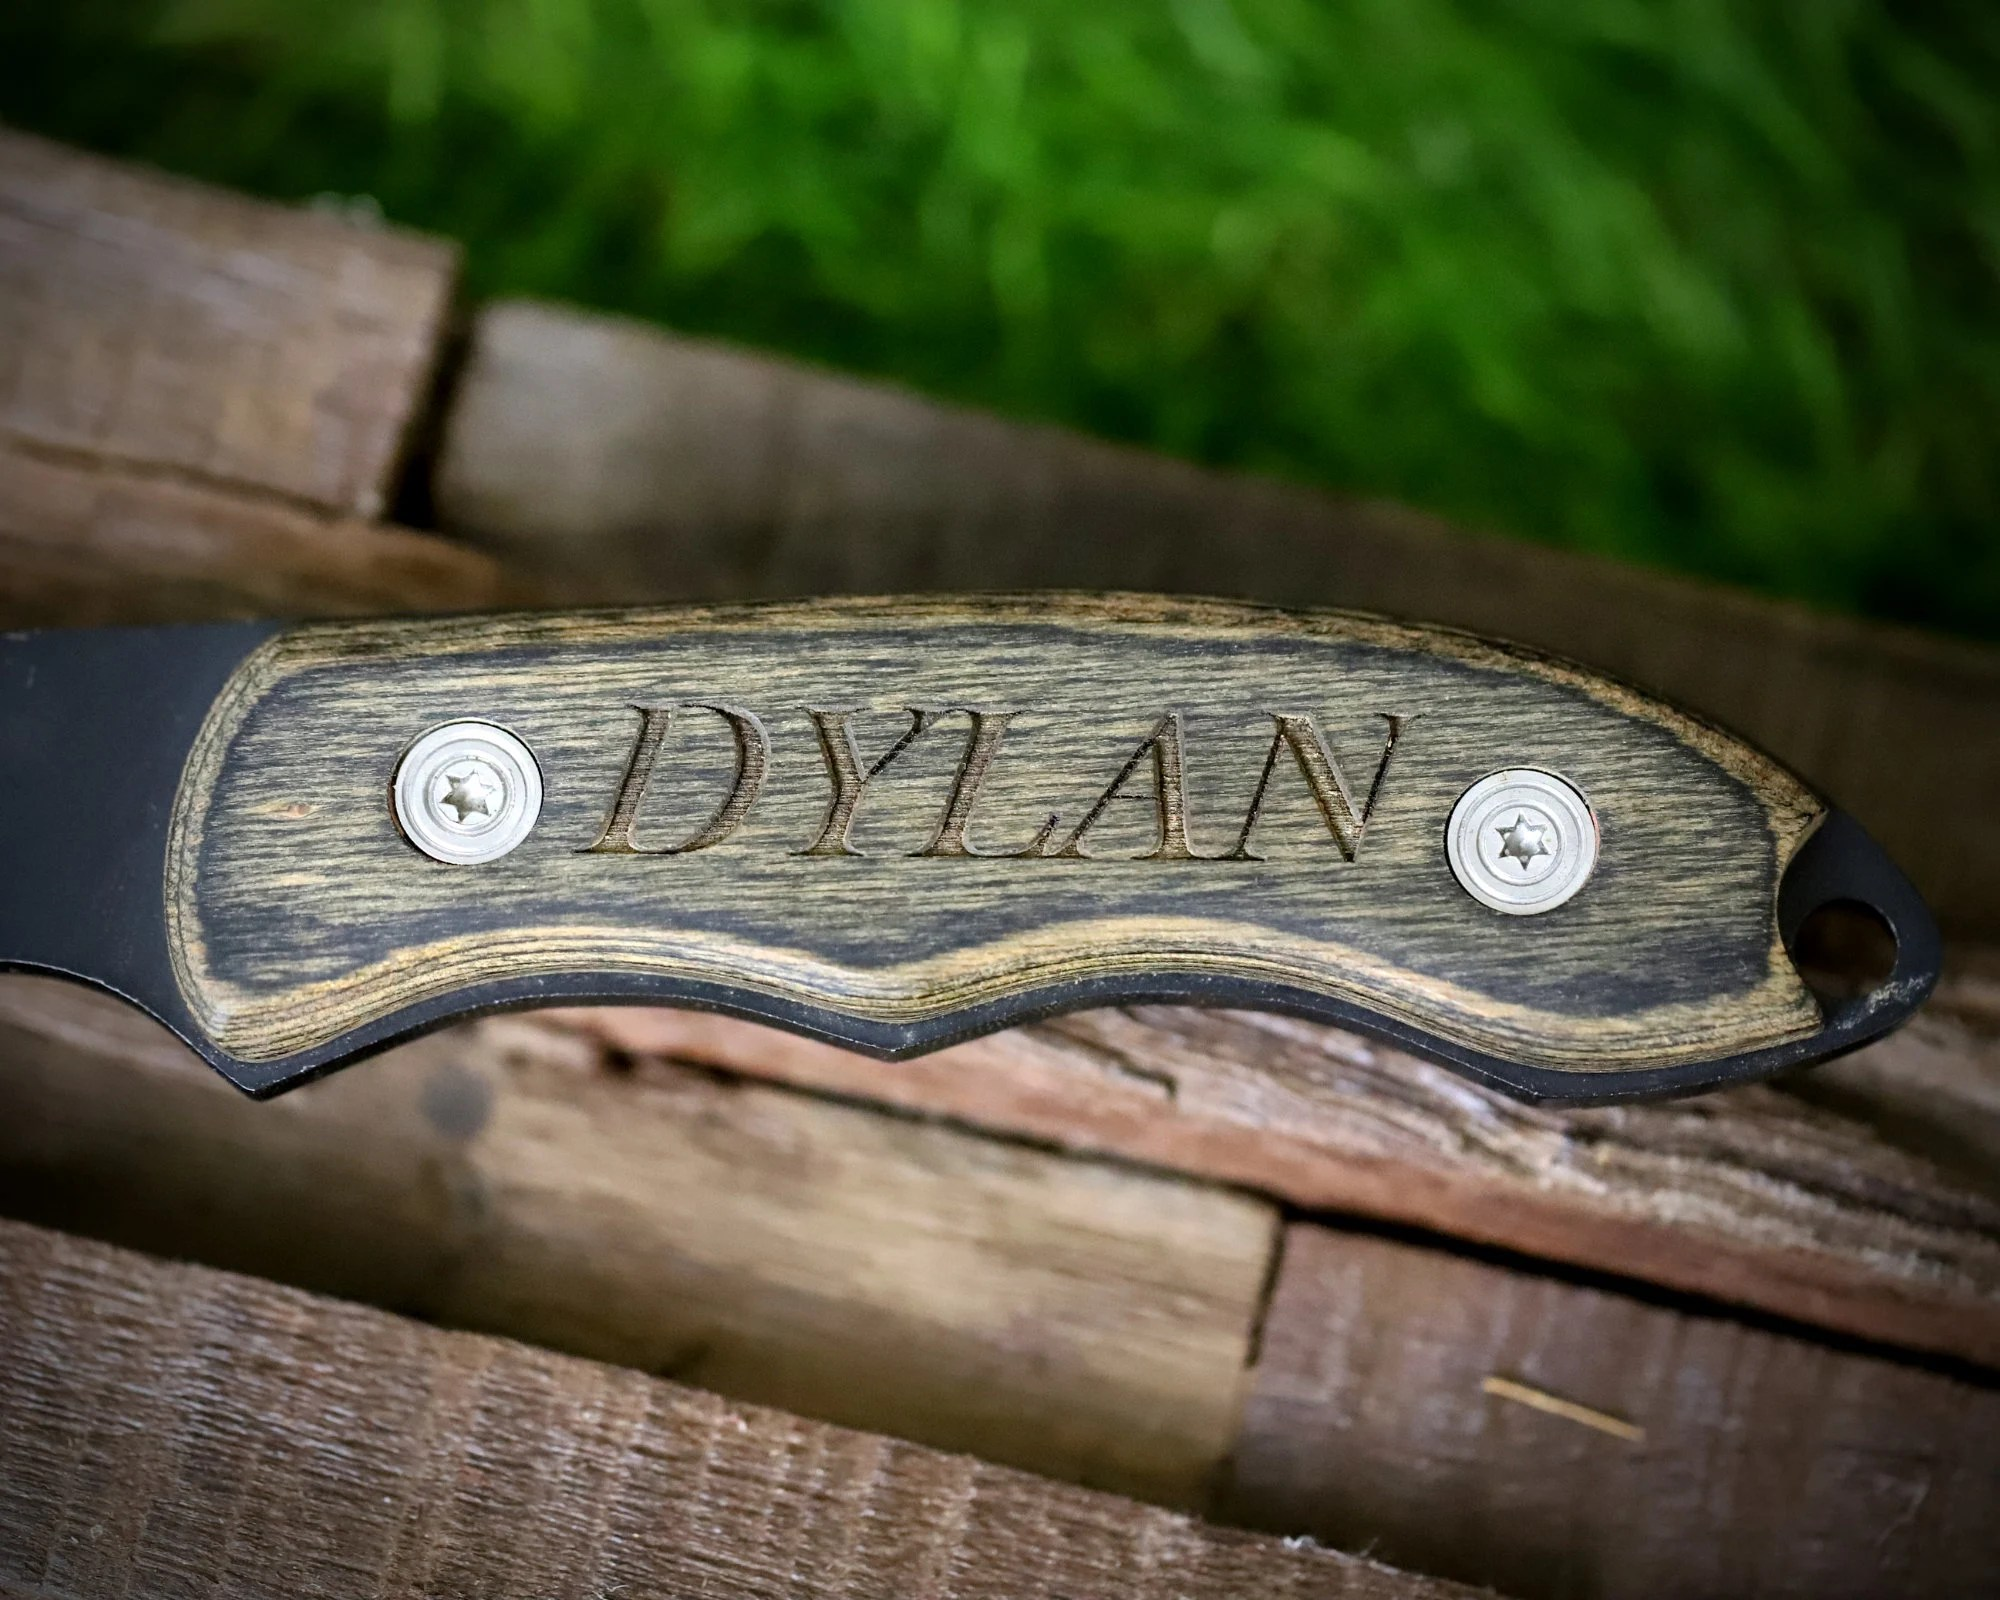 Personalized Hatchet for Groomsmen Personalized Throwing Axe image 2